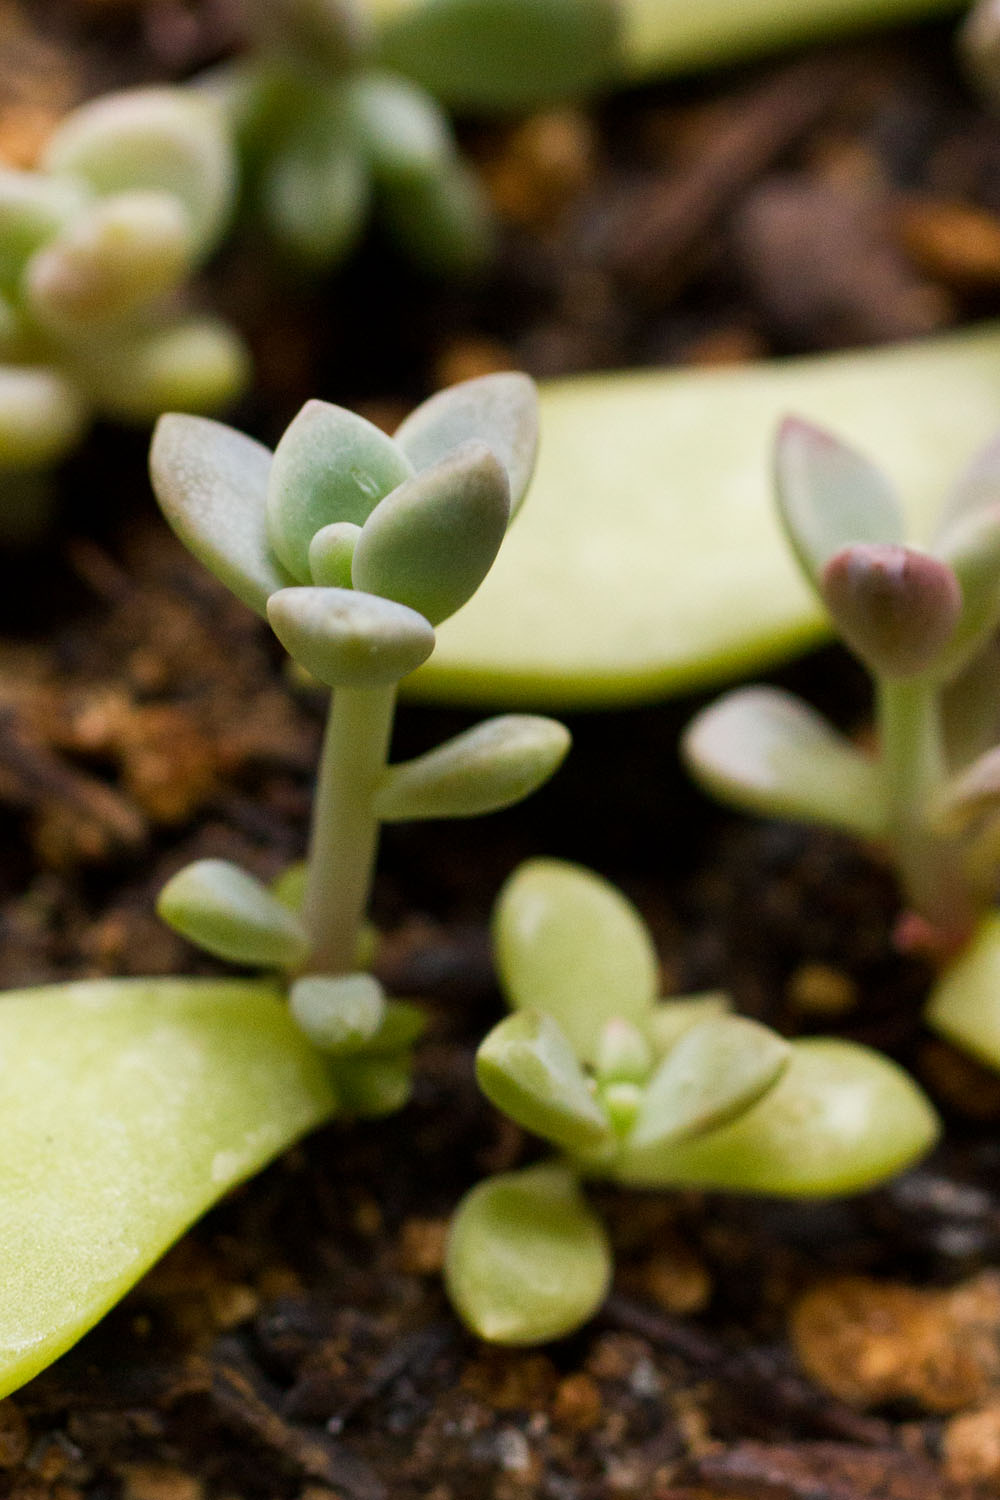 Growth Care And Propagating Succulents And Other Cacti 2014